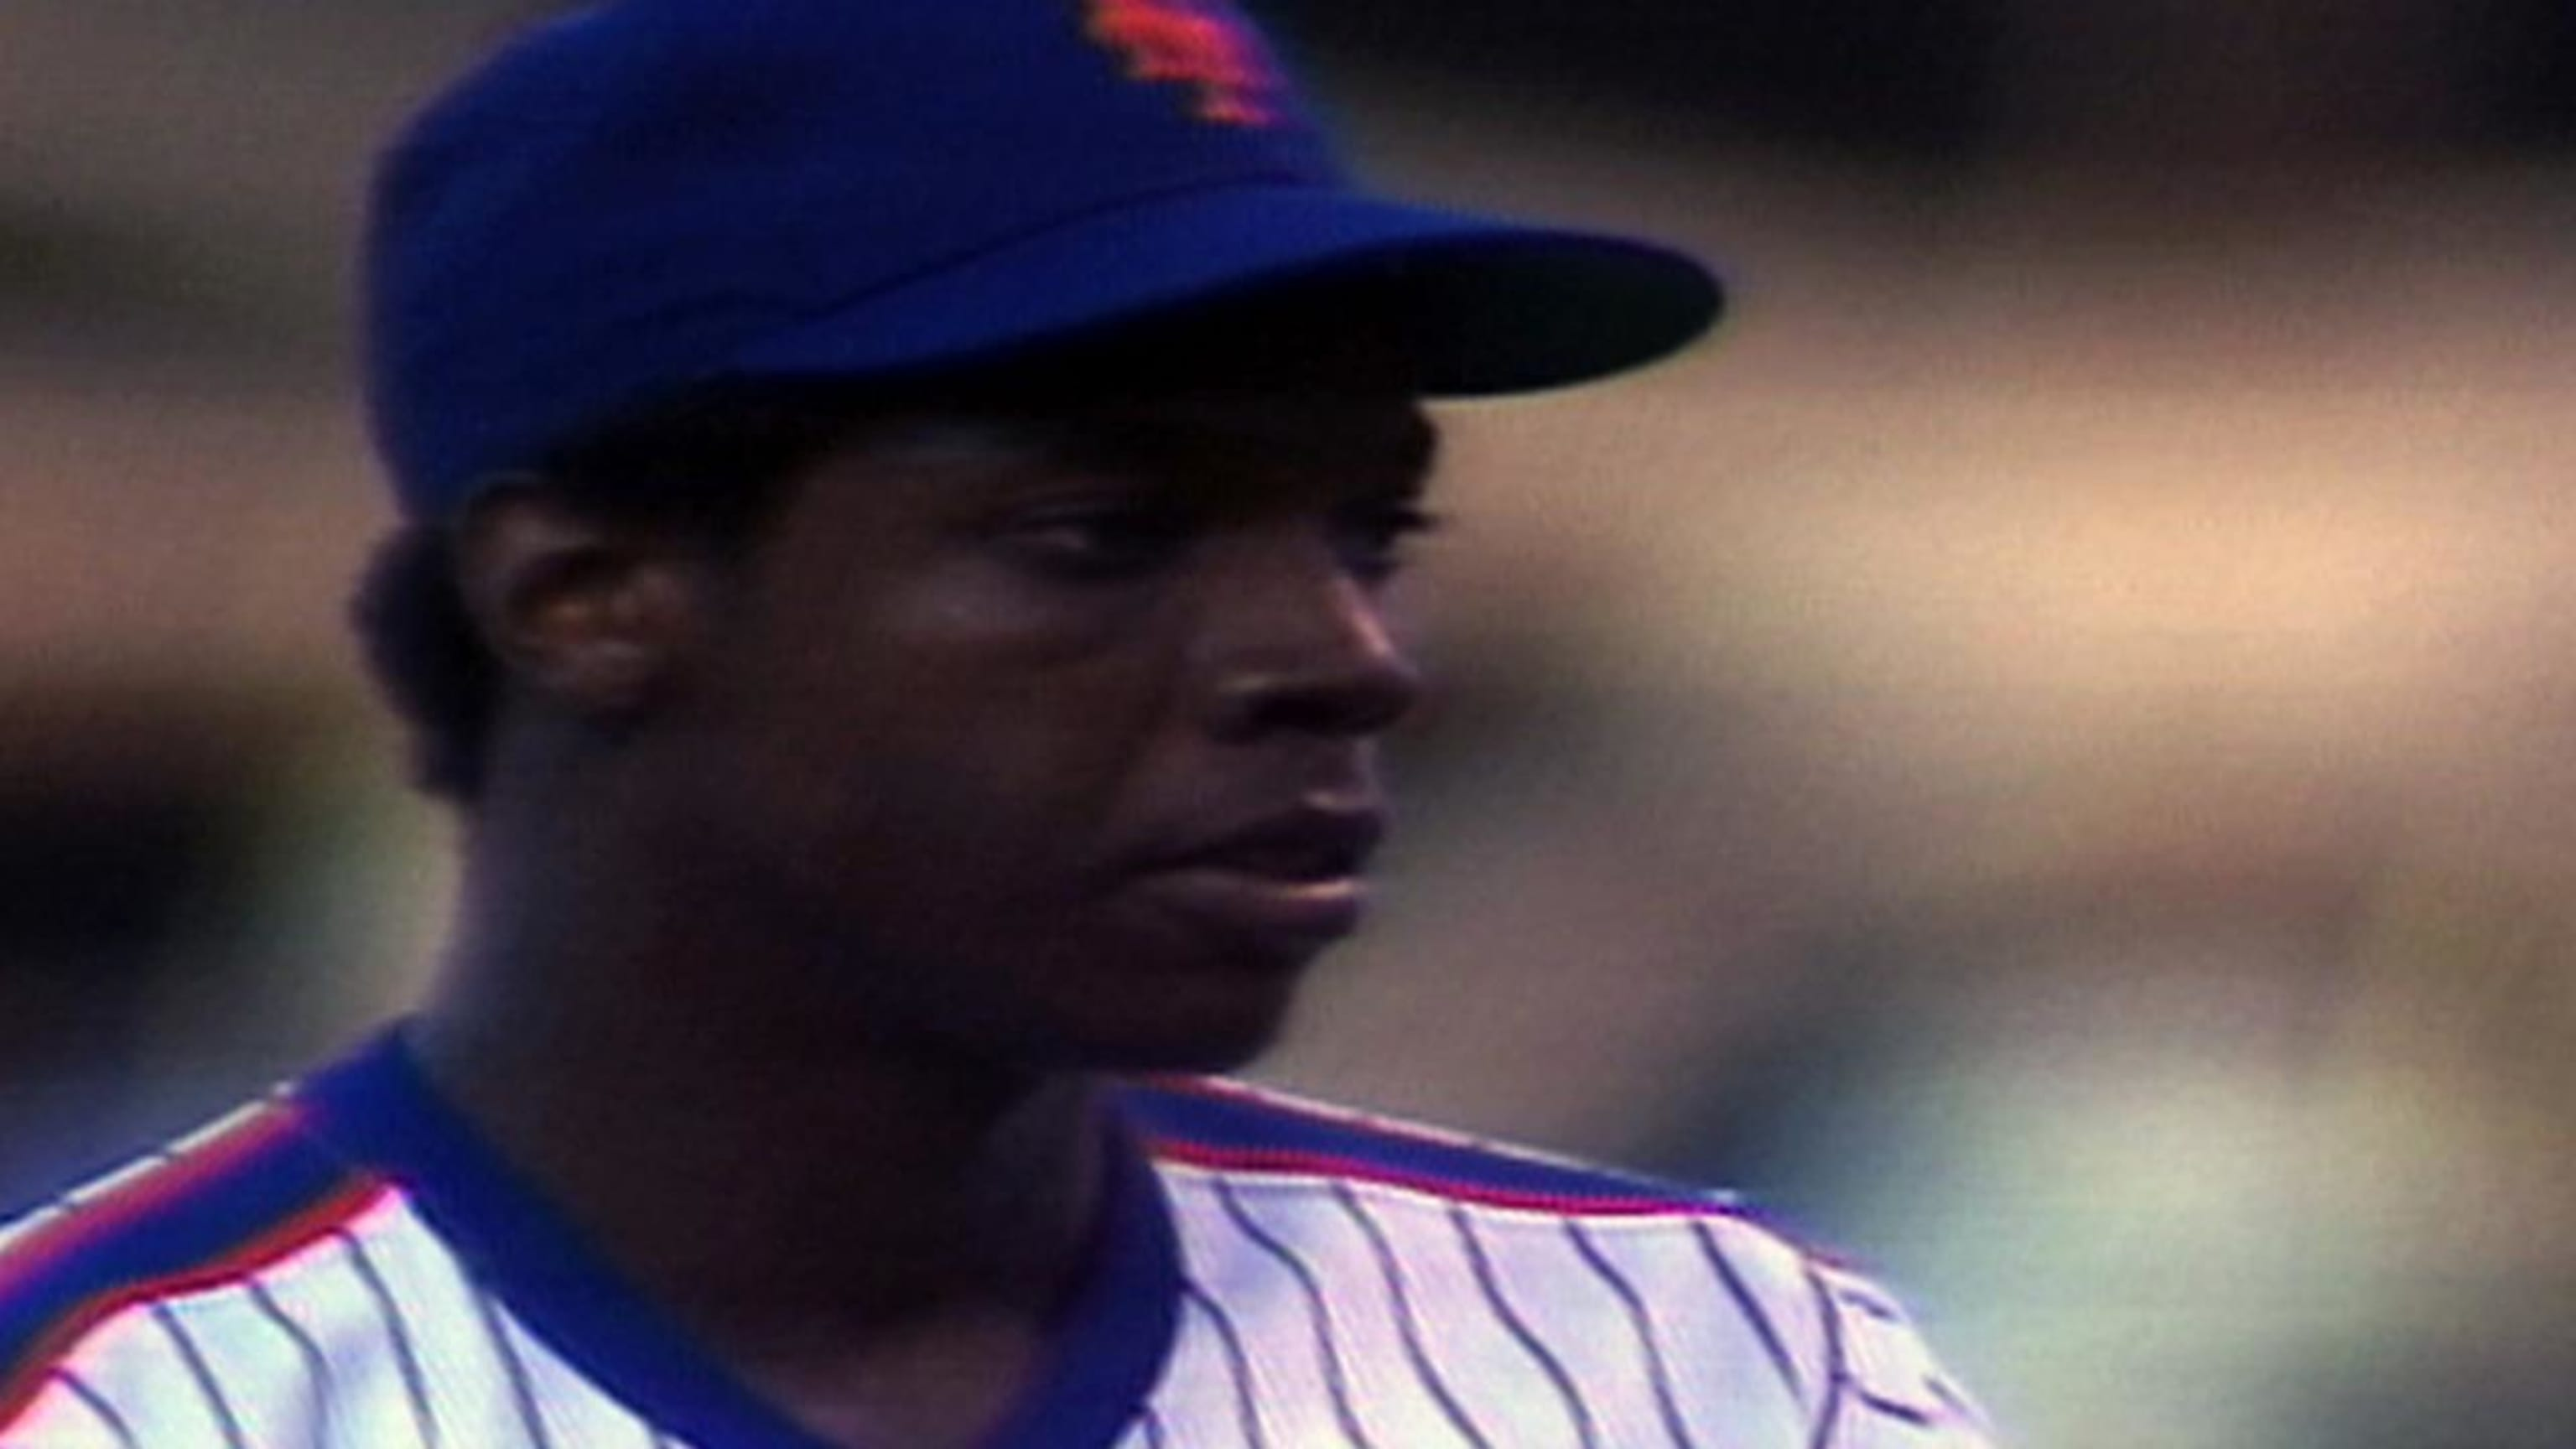 Gooden strikes out the side